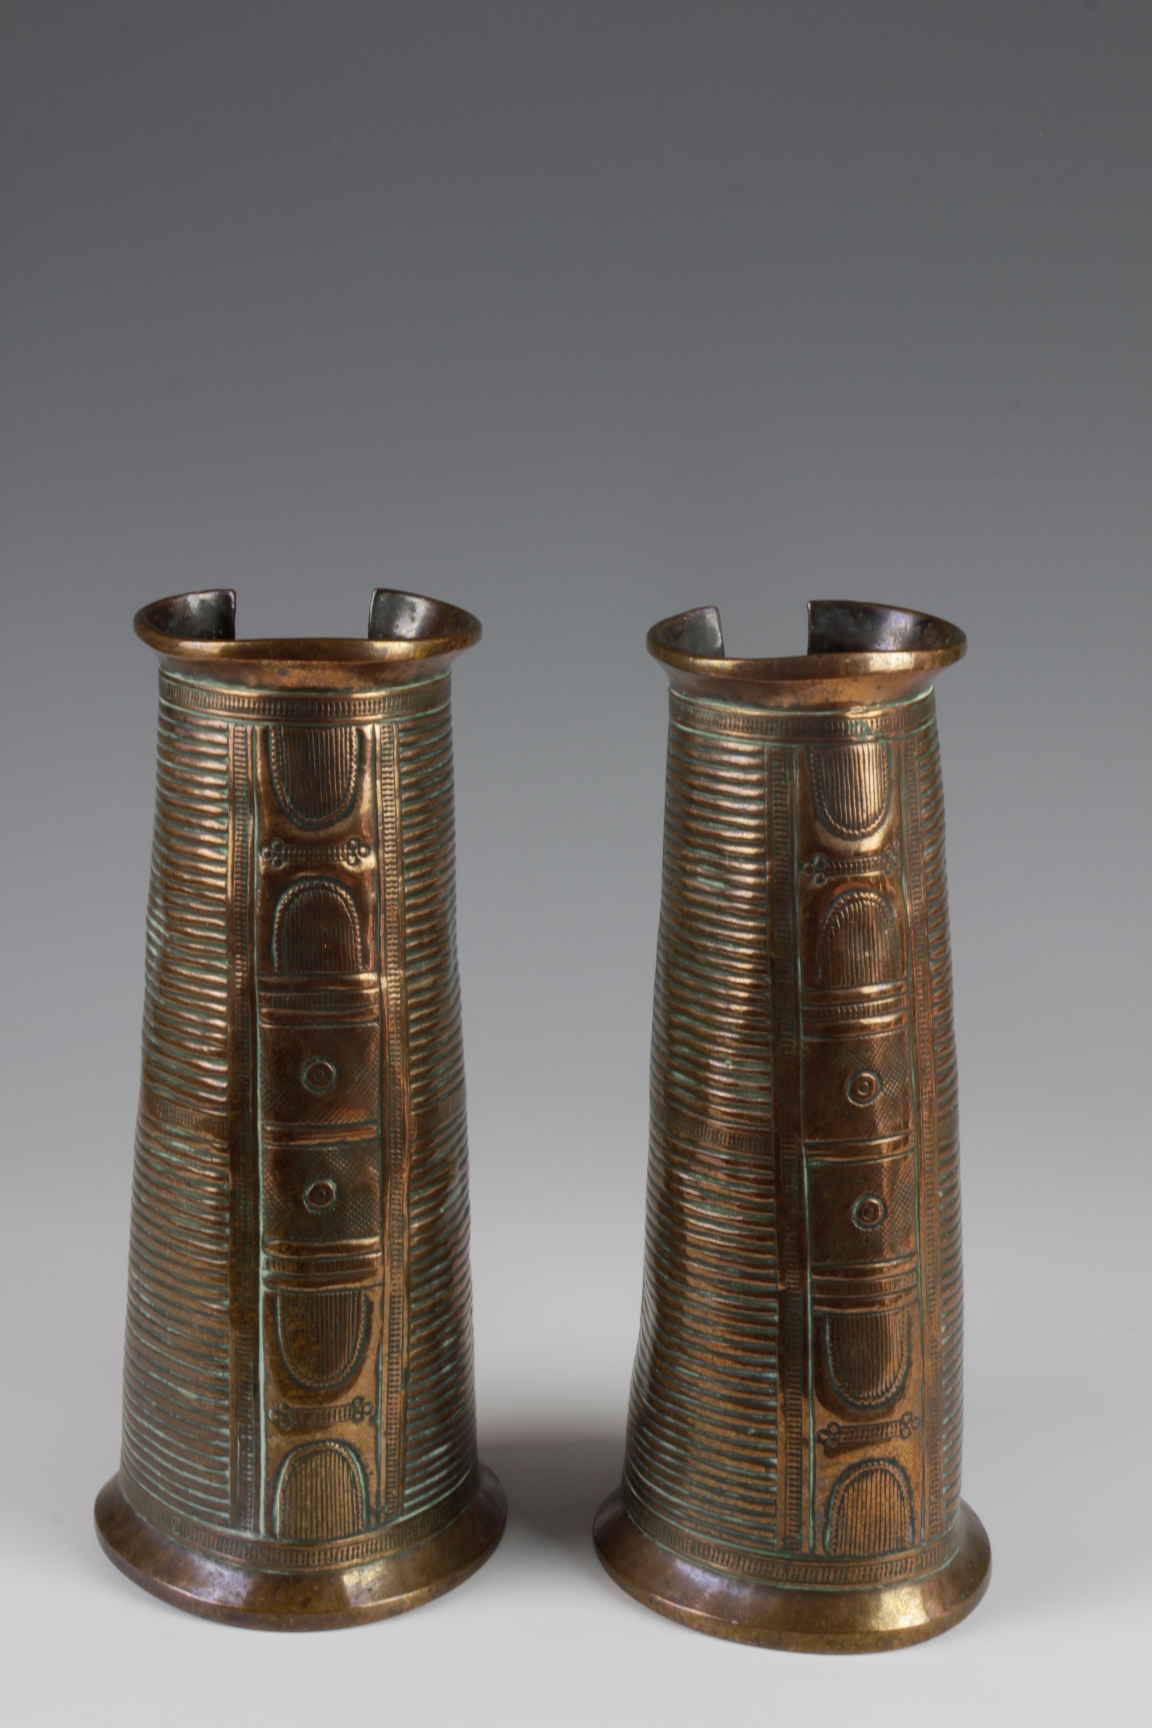 Pair of Copper Cuffs